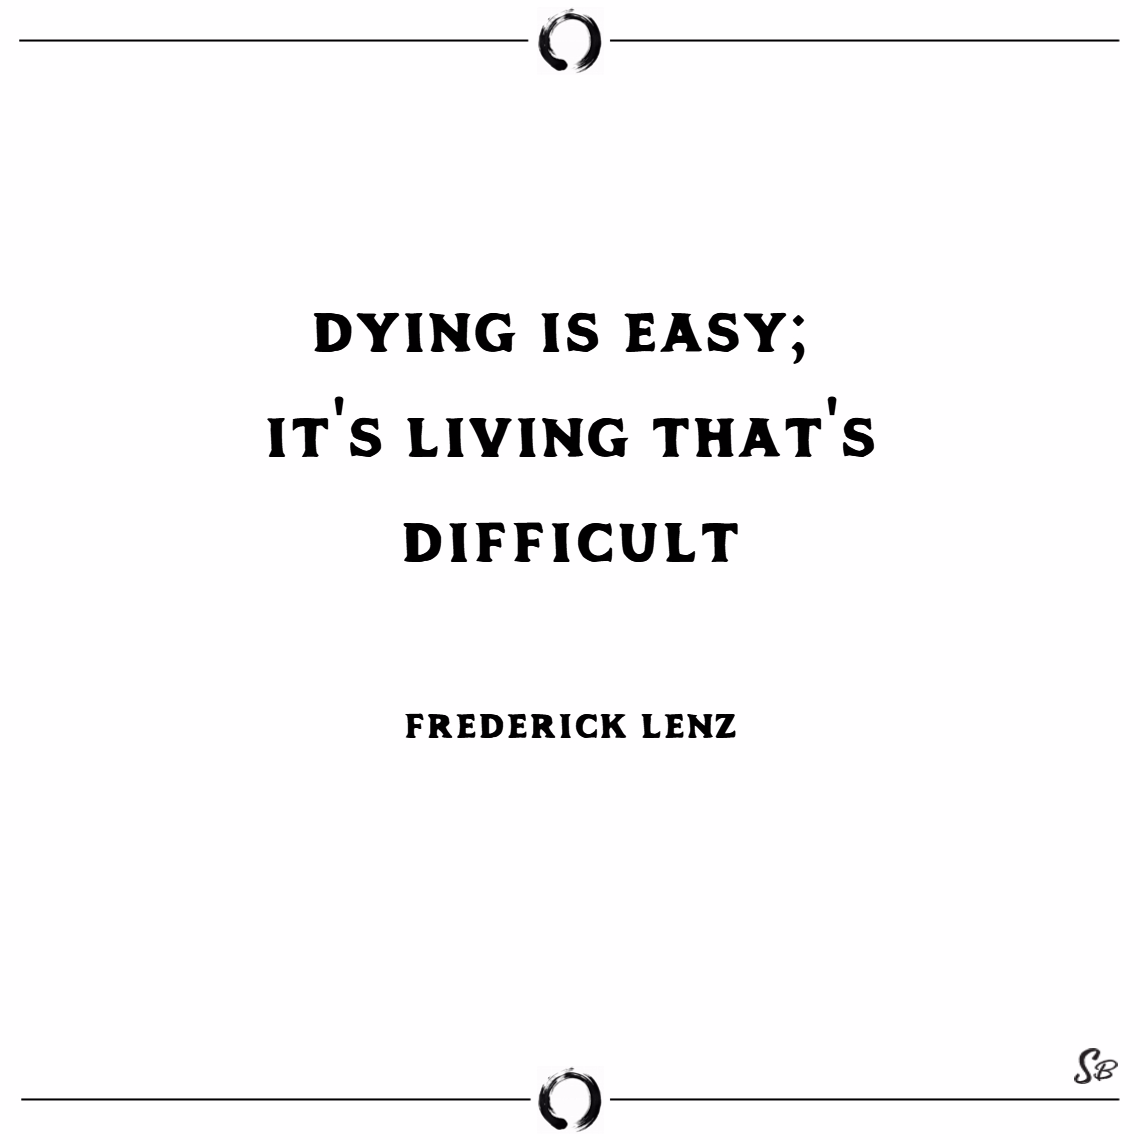 Dying is easy; it's living that's difficult. – frederick lenz